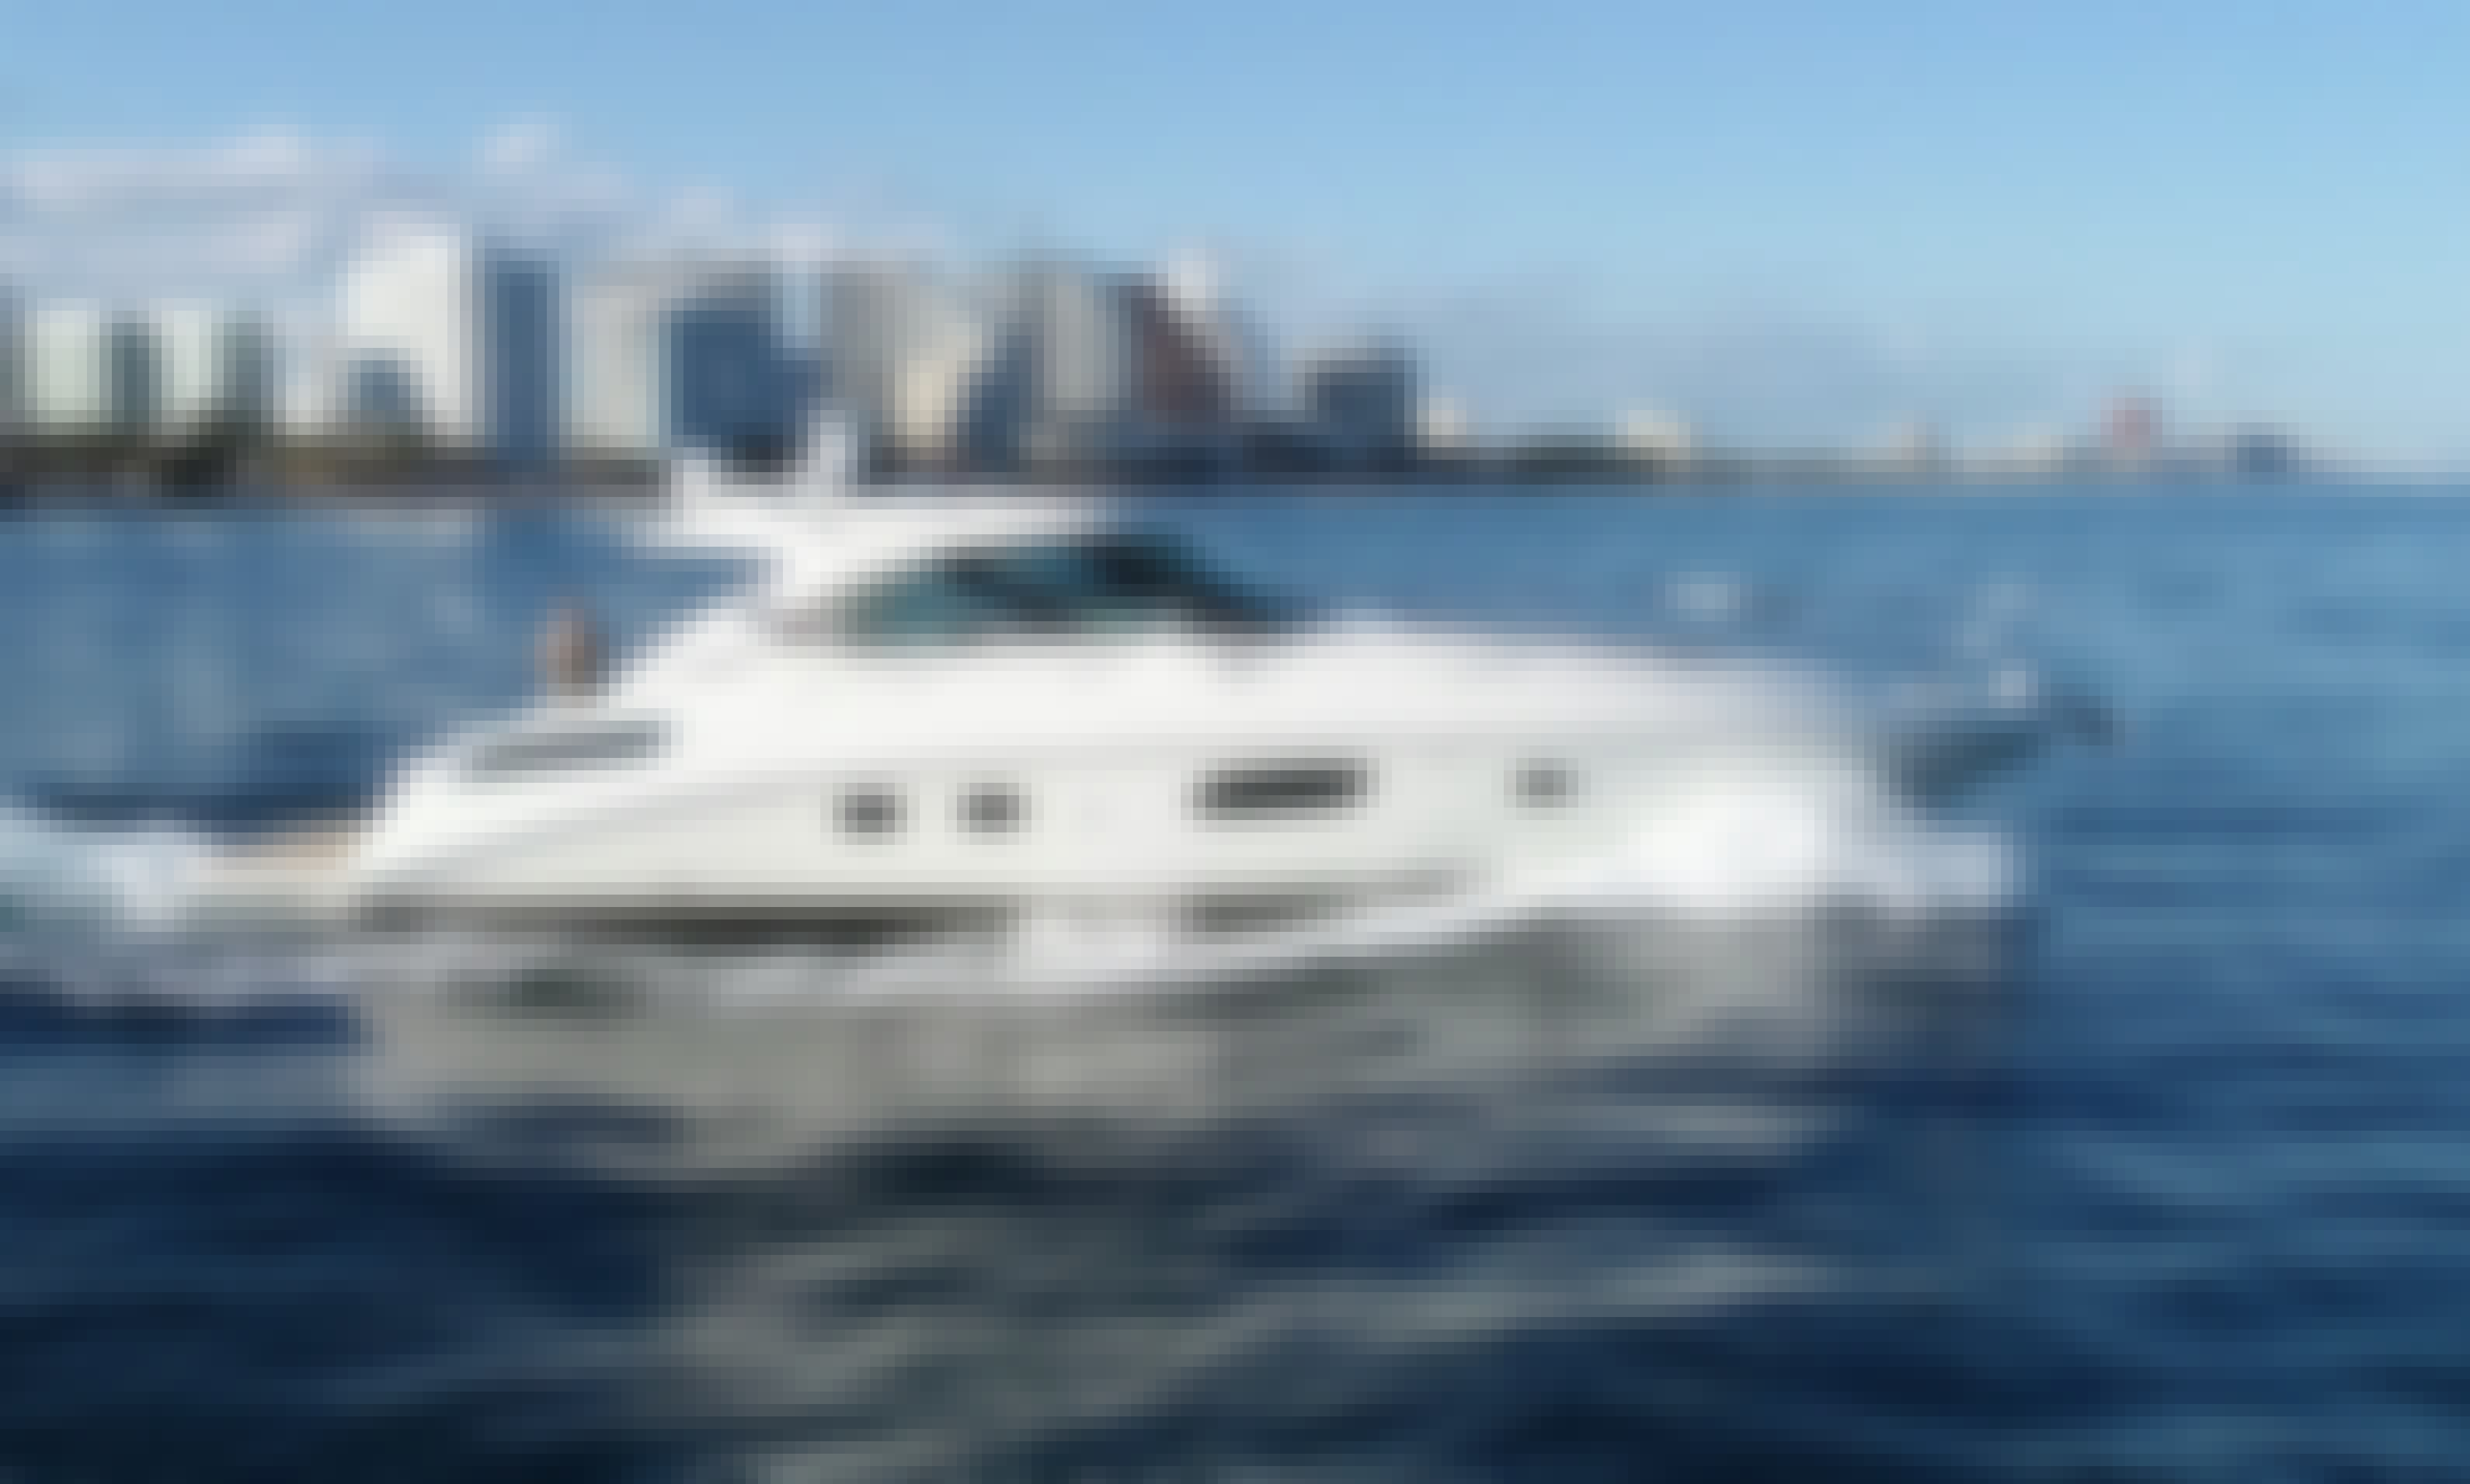 2016 47' Luxury Sea Ray for Charter in Fort Lauderdale